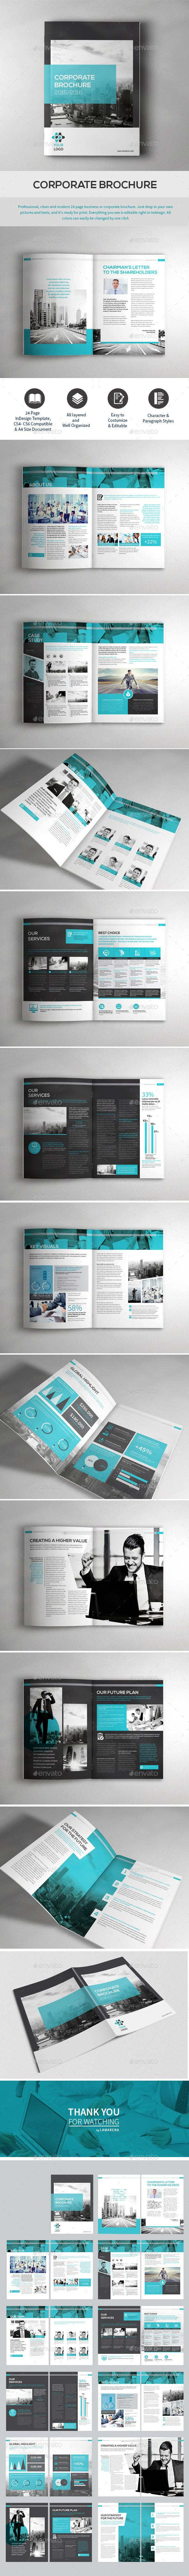 Company Brochure Template InDesign INDD. Download here: http://graphicriver.net/item/company-brochure/15548243?ref=ksioks